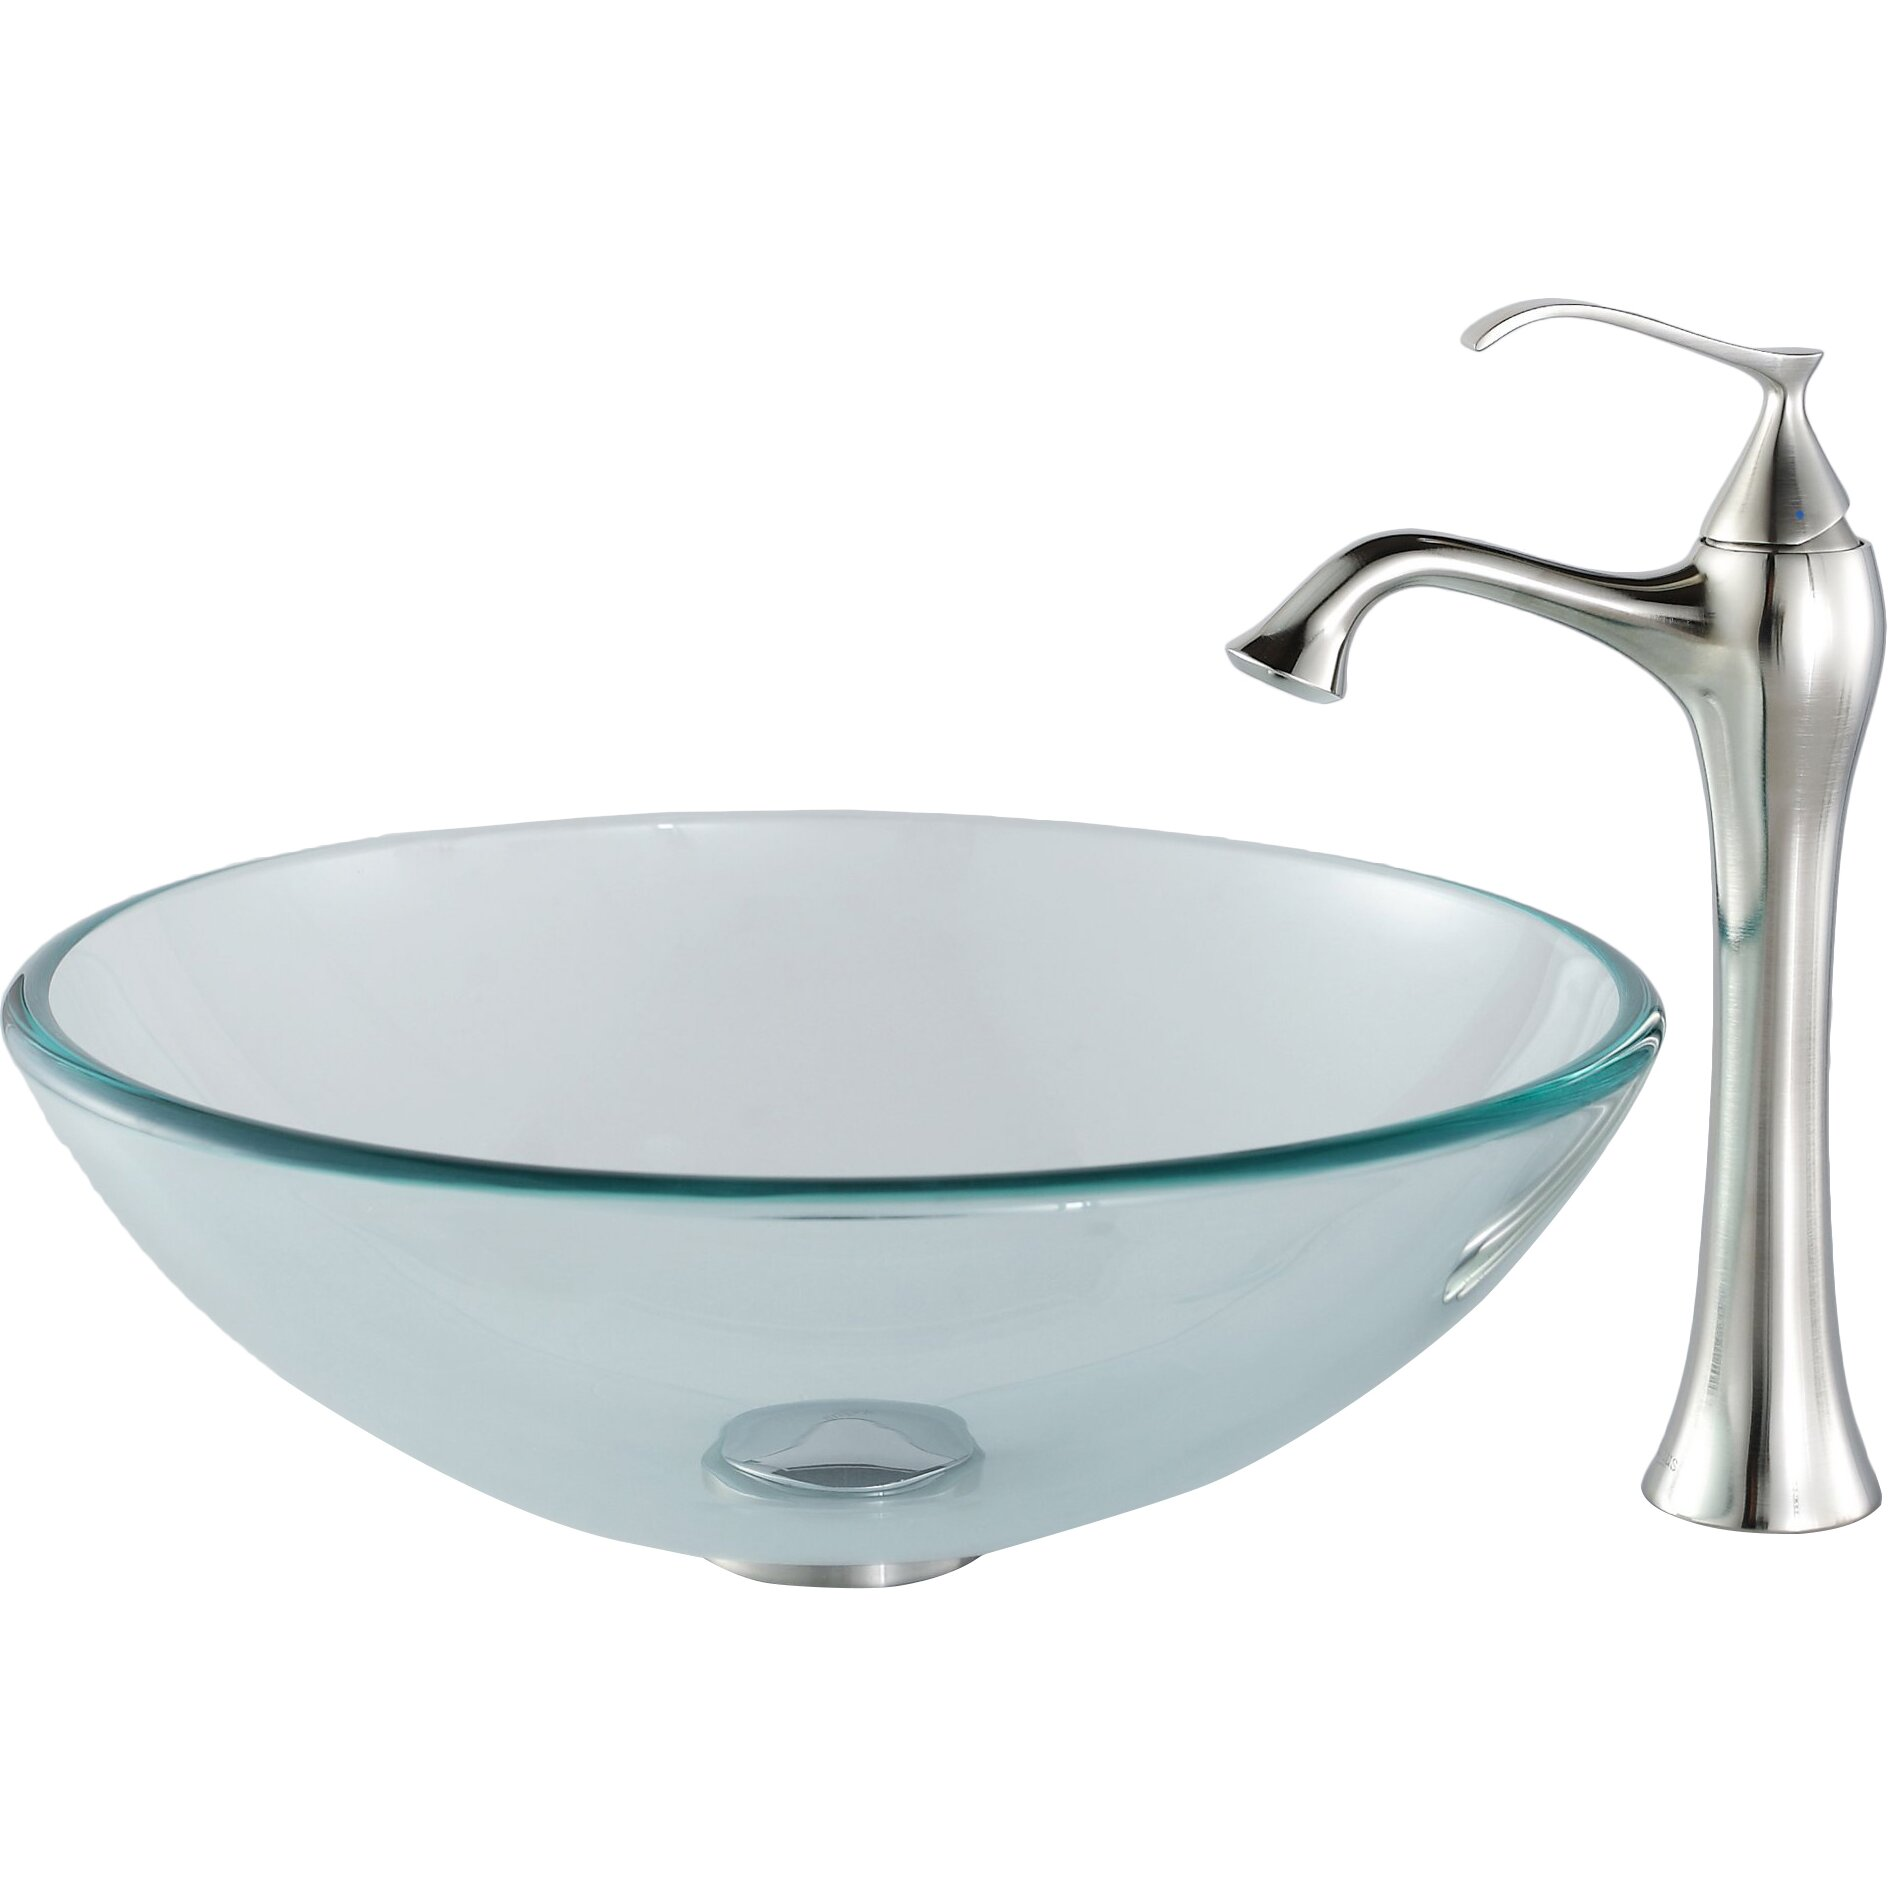 Kraus Glass Vessel Bathroom Sink with Single Handle Single Hole Faucet ...